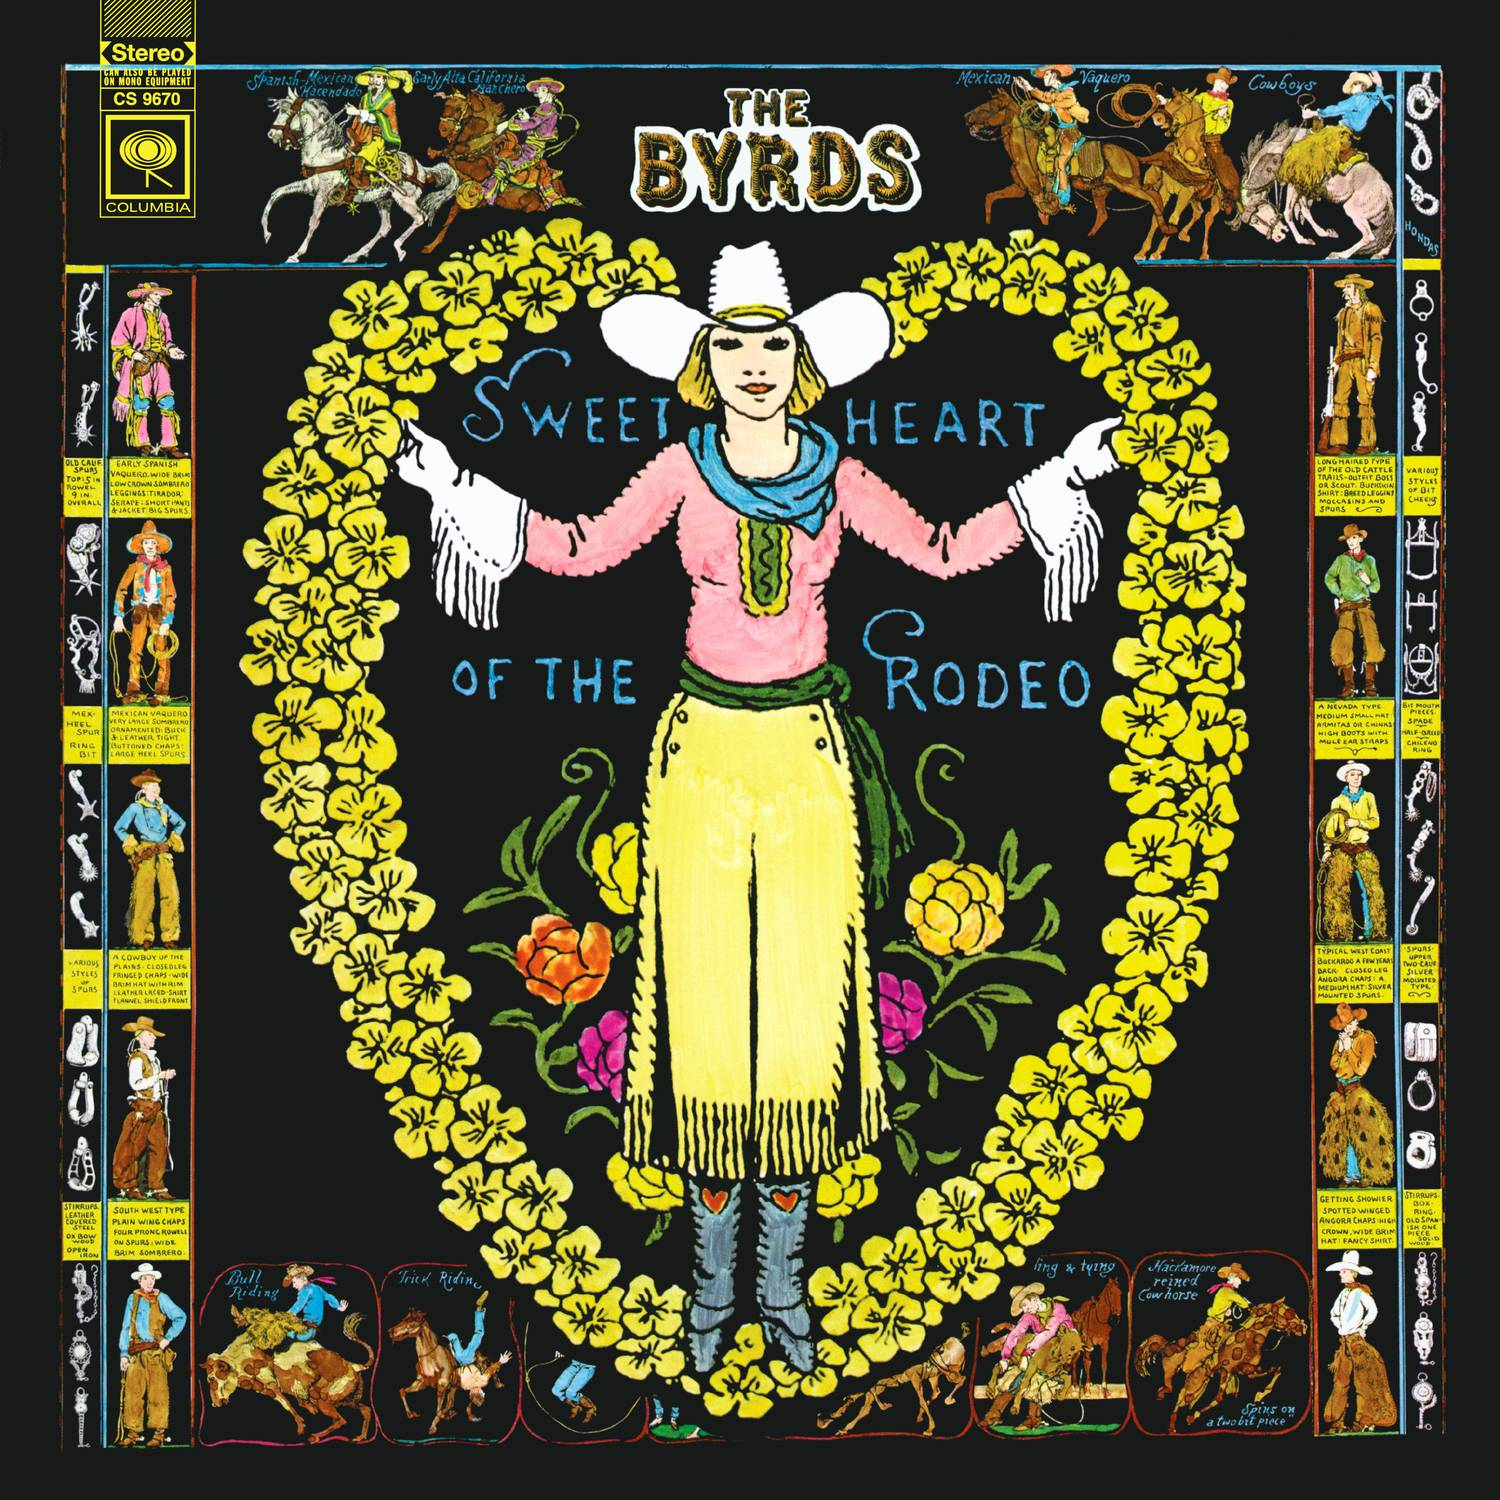 Фото - The Byrds The Byrds. Sweetheart Of The Rodeo. Legacy Edition (4 LP) виниловая пластинка the byrds sweetheart of the rodeo legacy edition